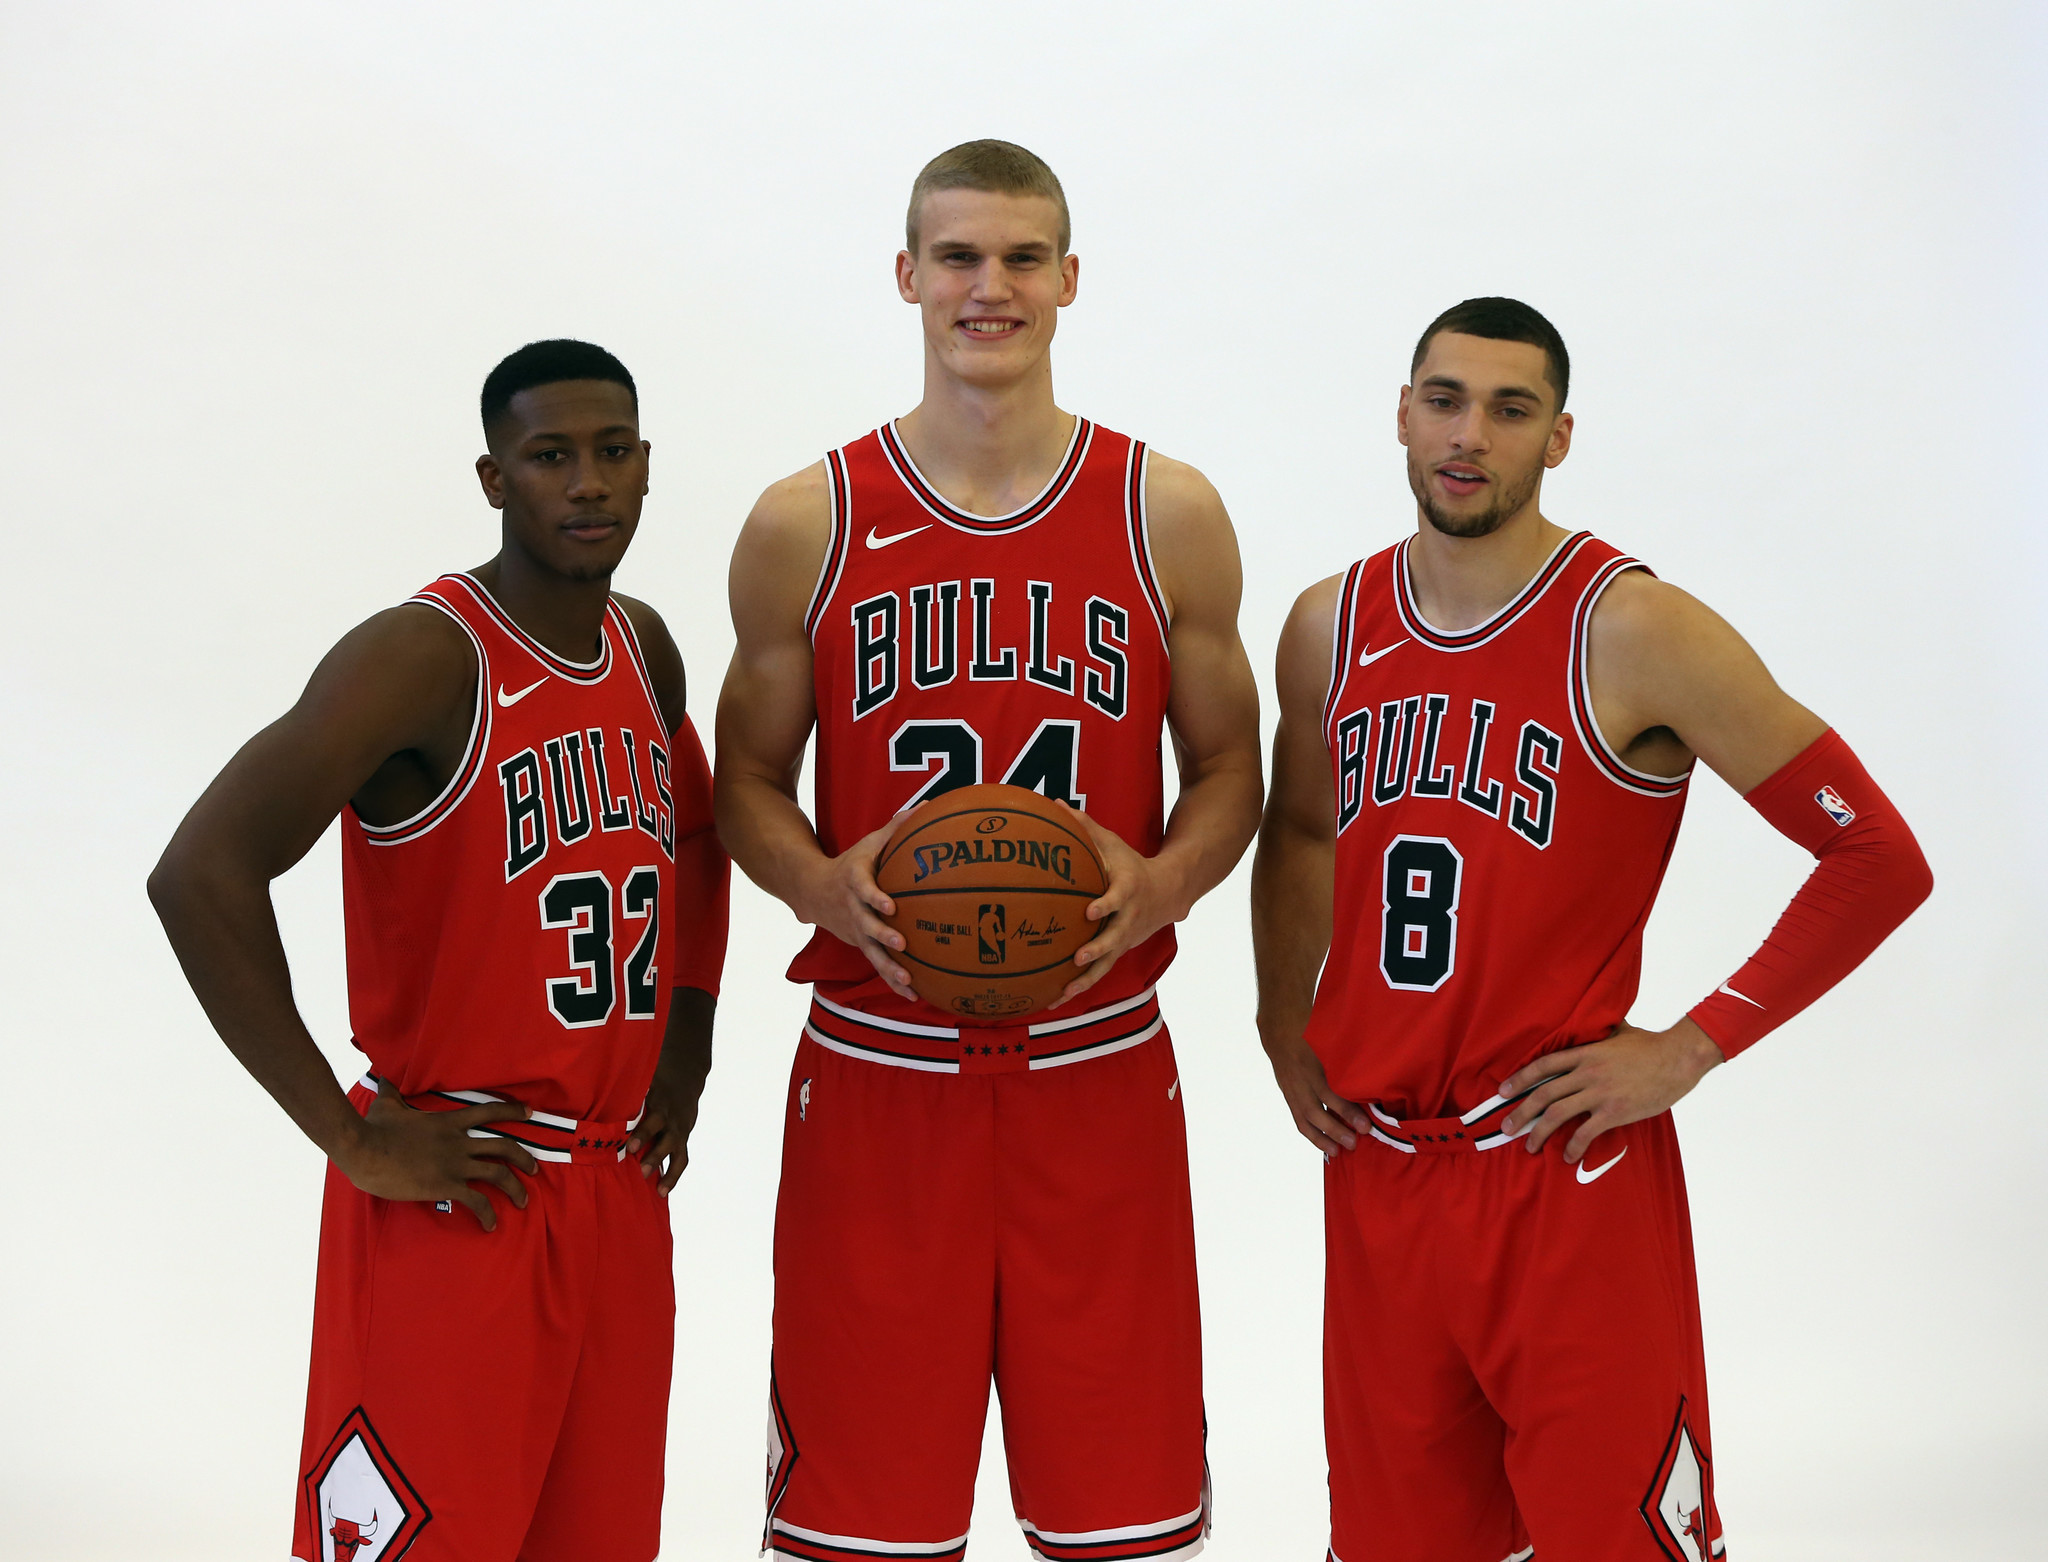 meet the bulls players pictures